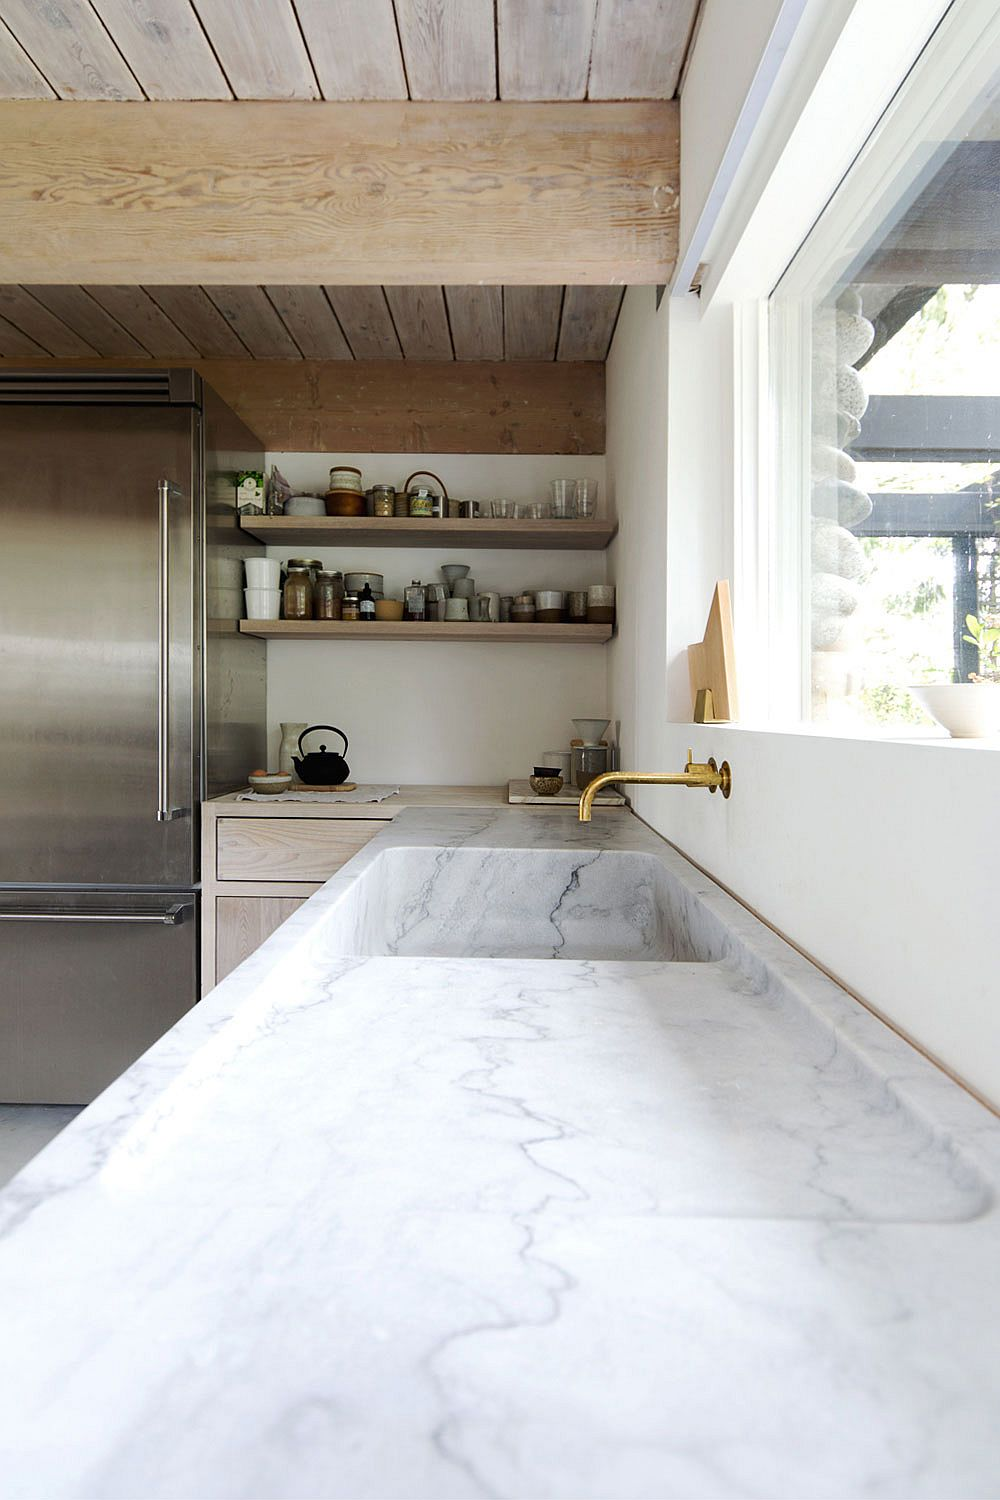 Custom marble counter monolith worktop in the kitchen